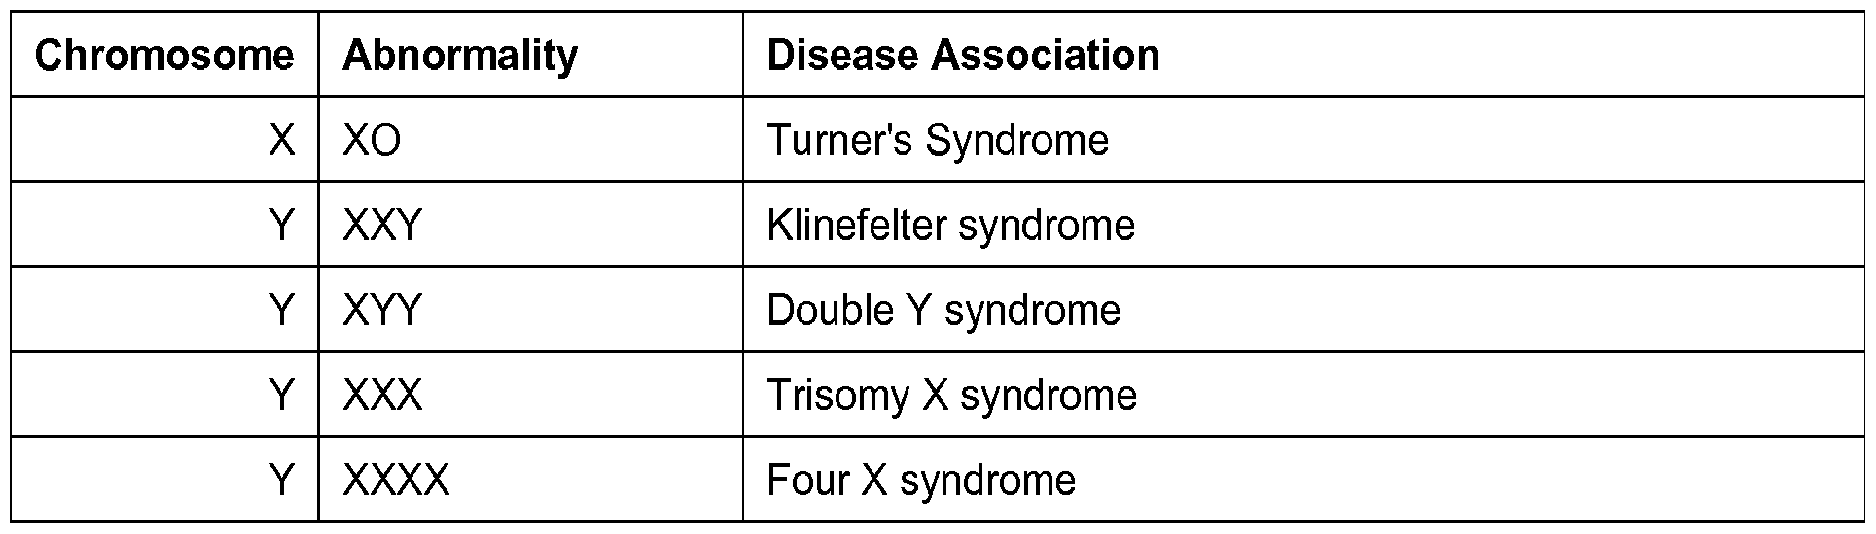 Chromosome Abnormalities Syndromes